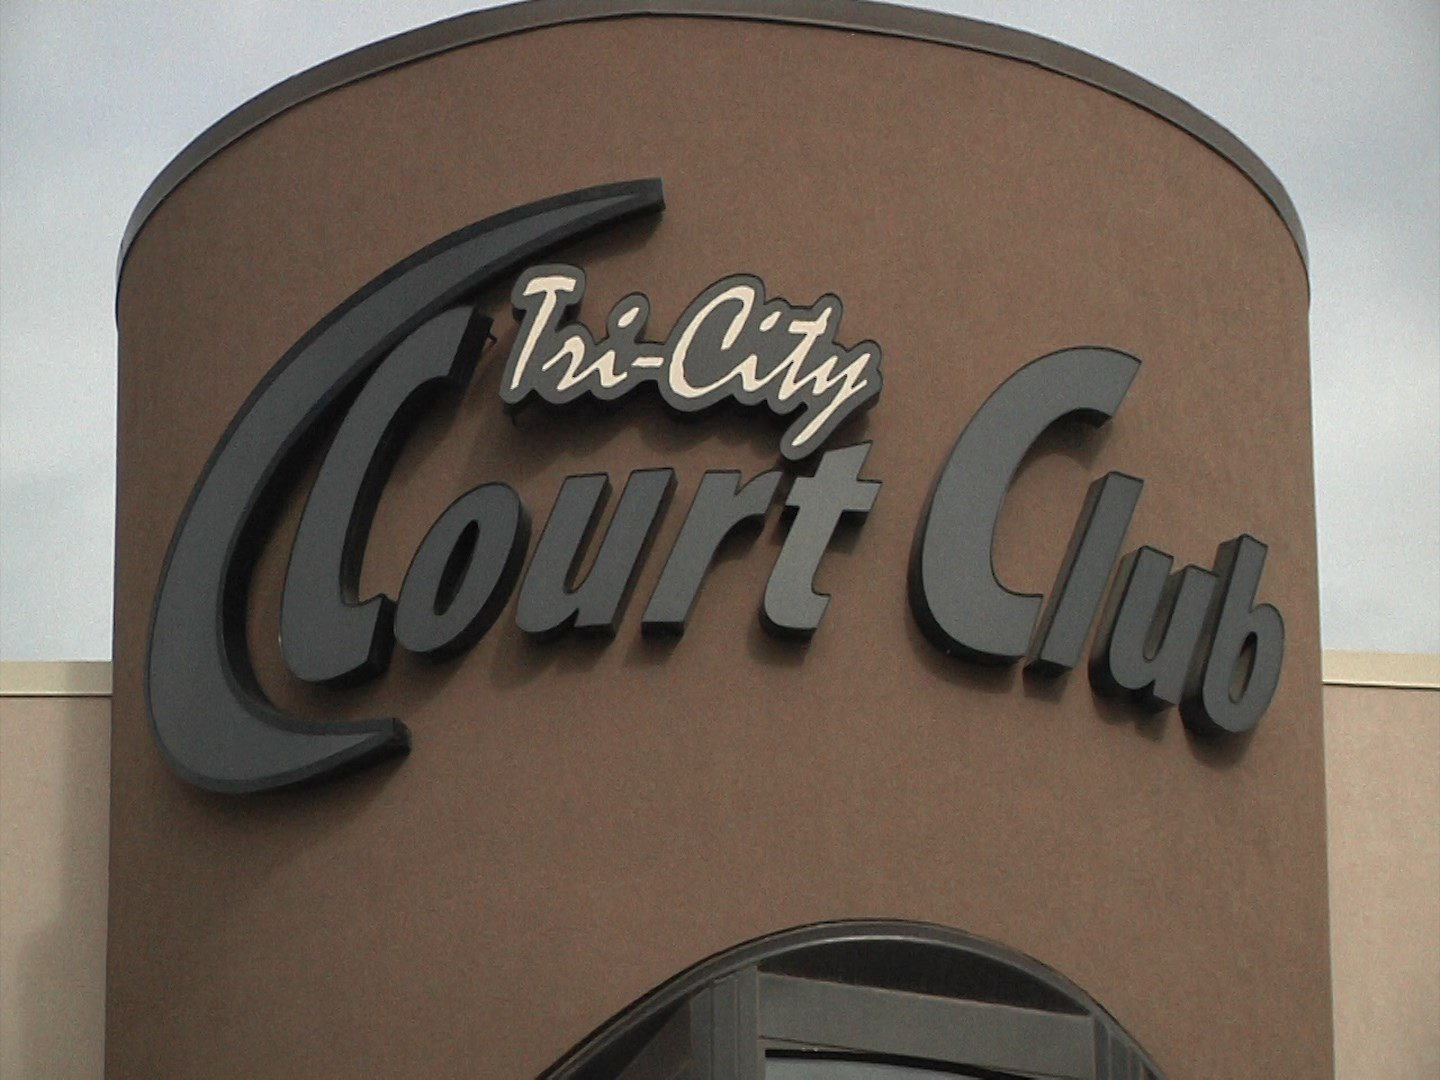 Tri City Court Club offers class for people with Parkinson's Disease